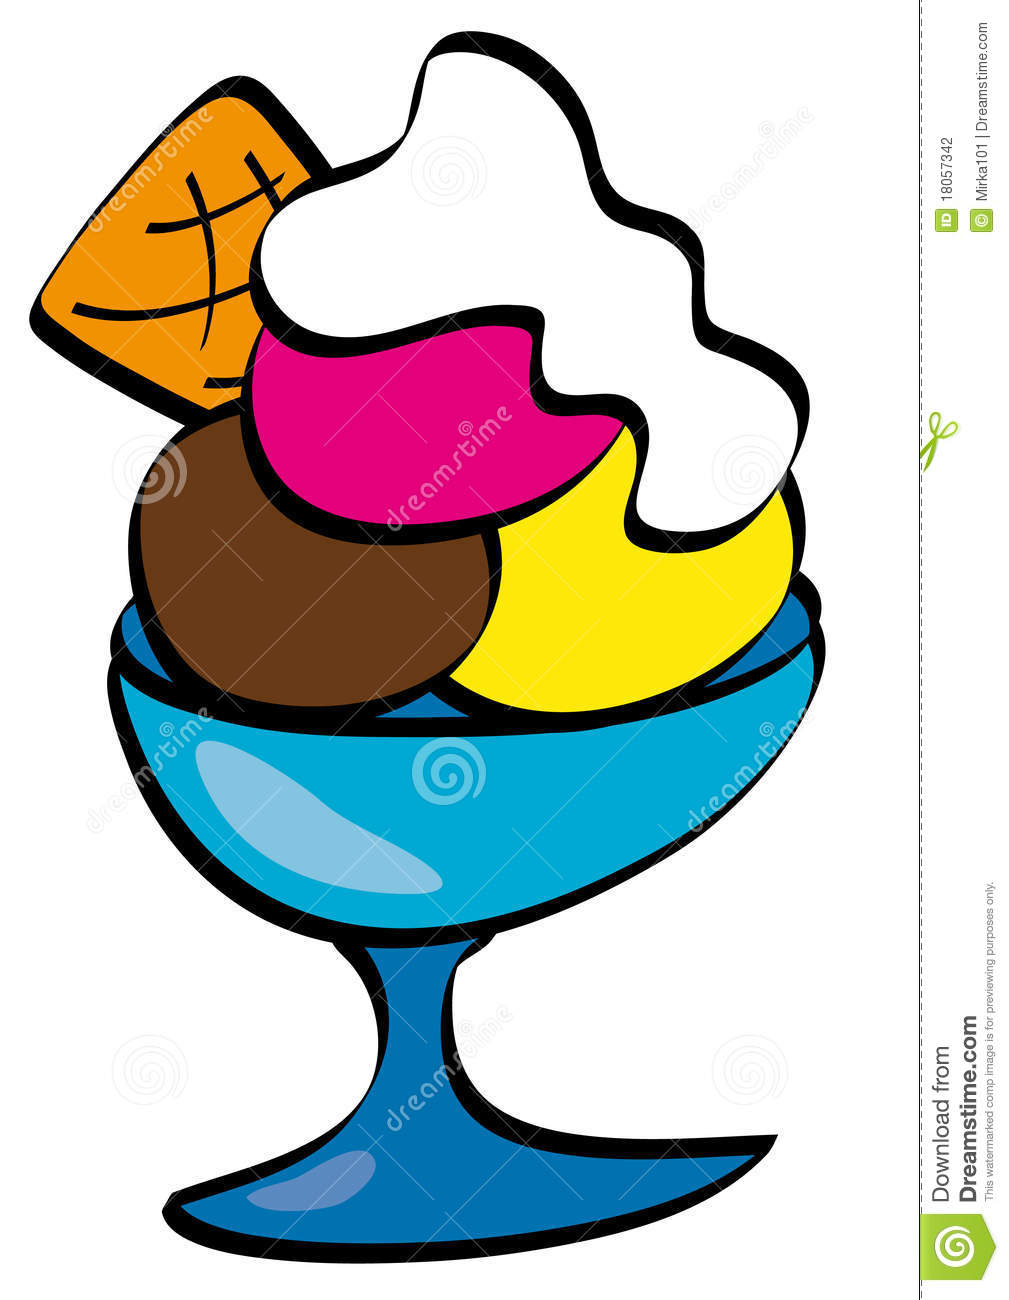 Icecream Clipart Free